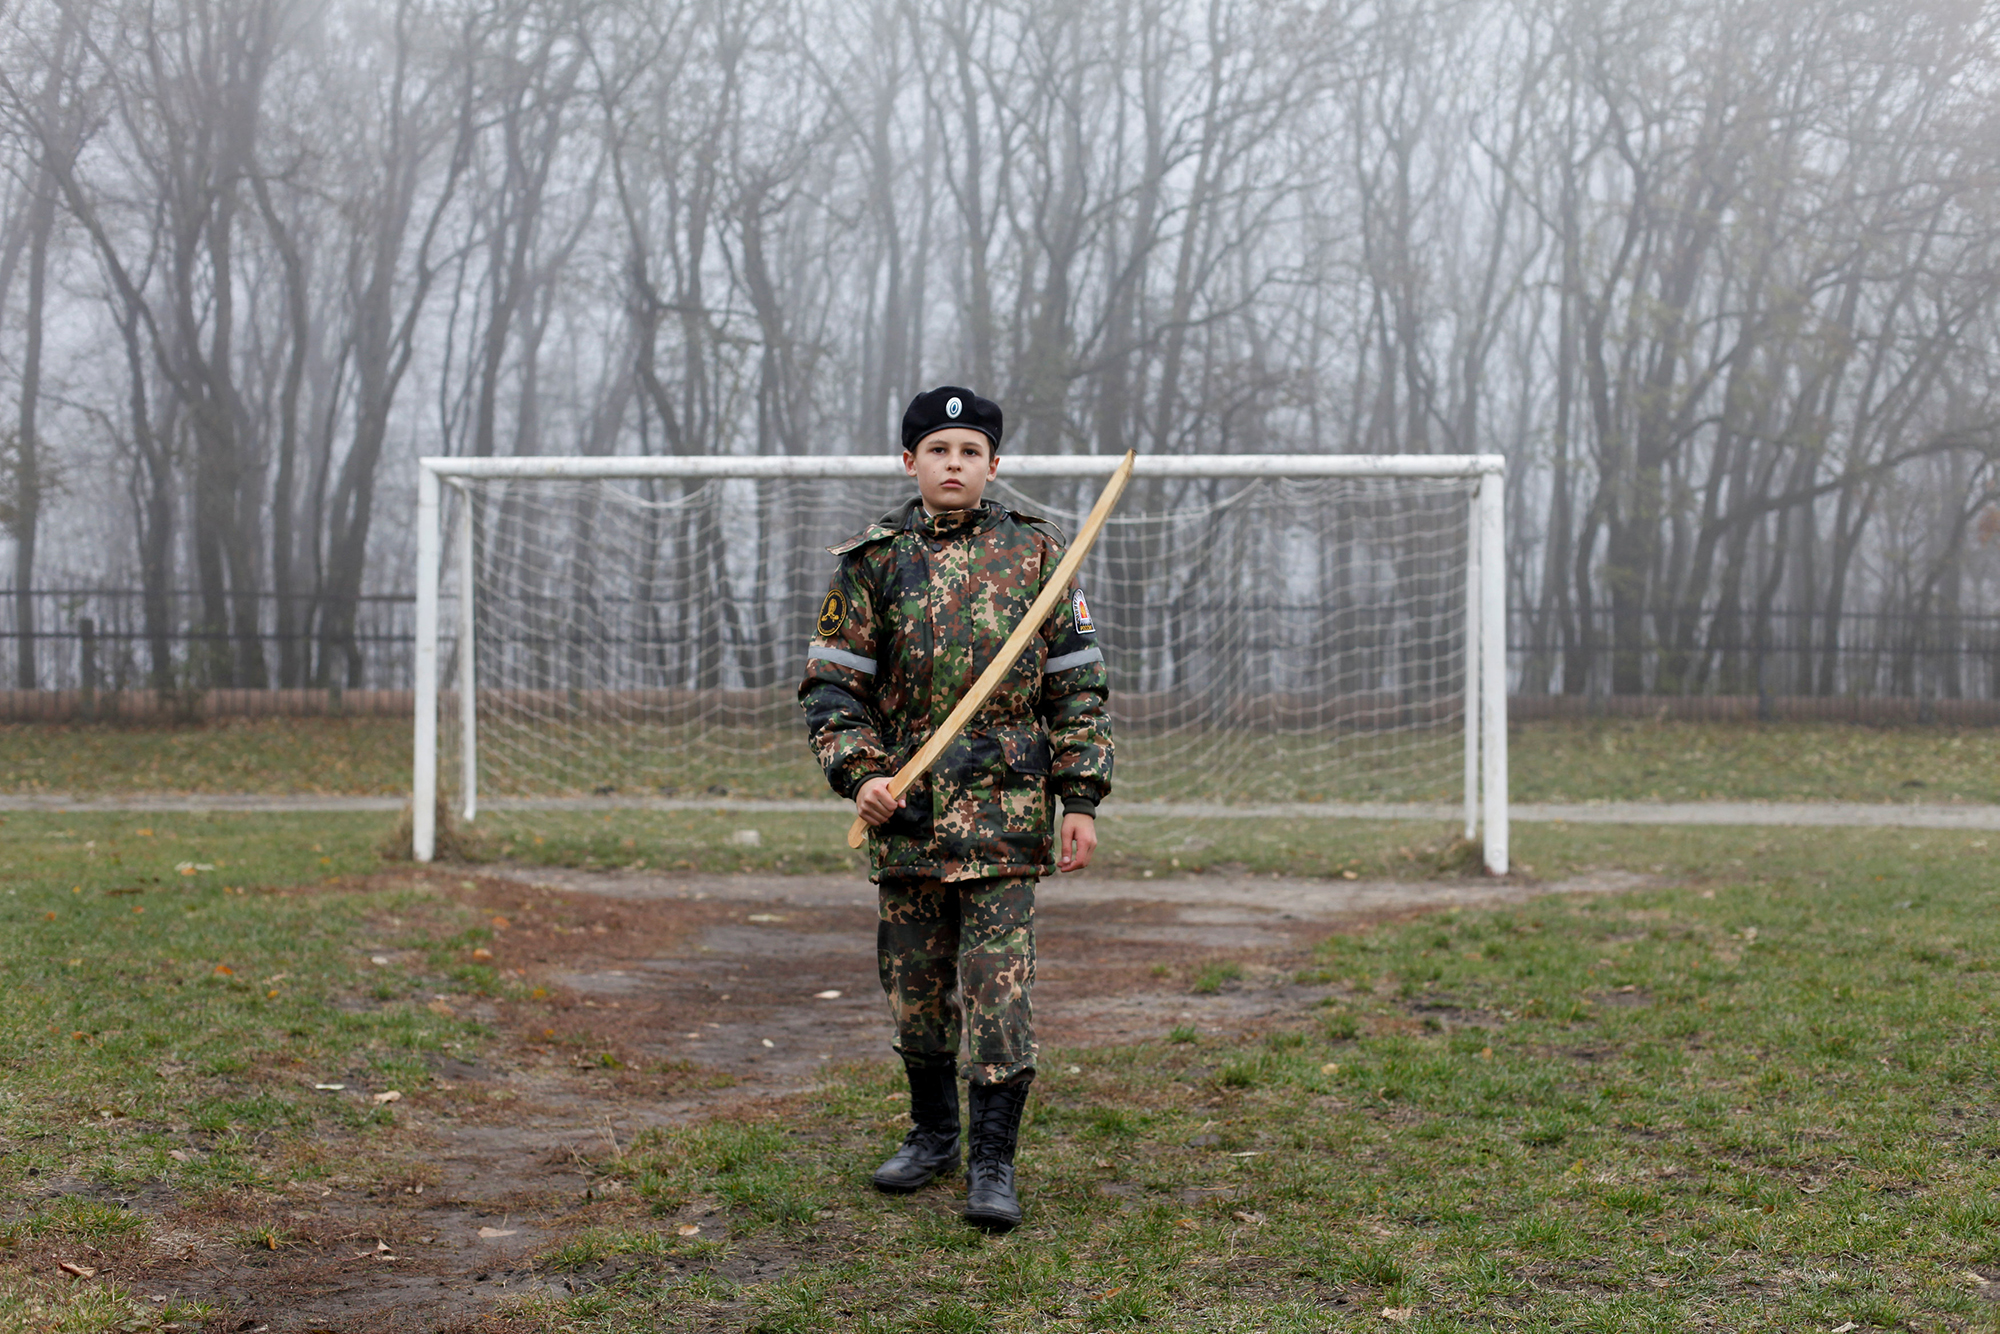 A cadet holds a model of a sword in front of a goalpost as he trains at the stadium of the General Yermolov Cadet School in S